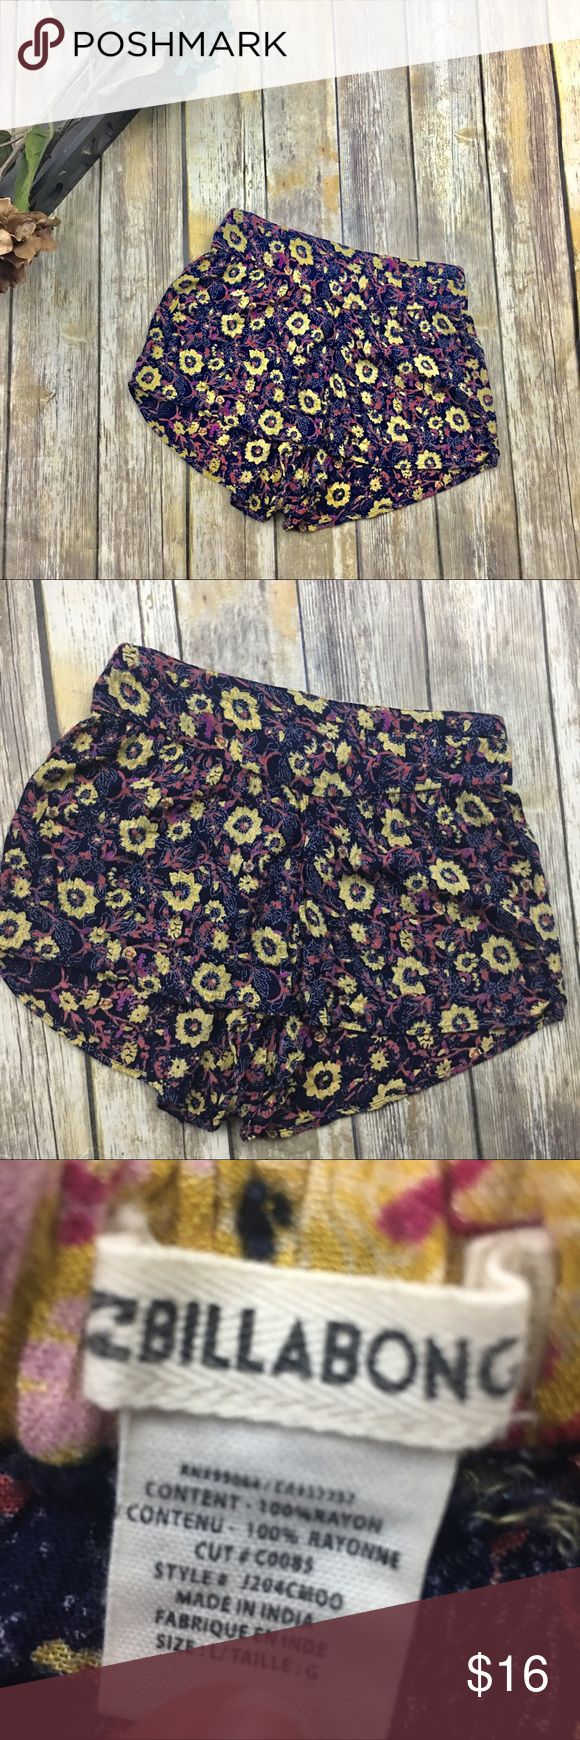 Billabong Trendy flower print shorts Trendy flower print shorts. Navy blue in color with red yellow and purple accent off color. Size large. 100% cotton. 30 inch waist without stretching material. 3 inch inseam. 11 inches from top to bottom of shorts. Billabong Shorts